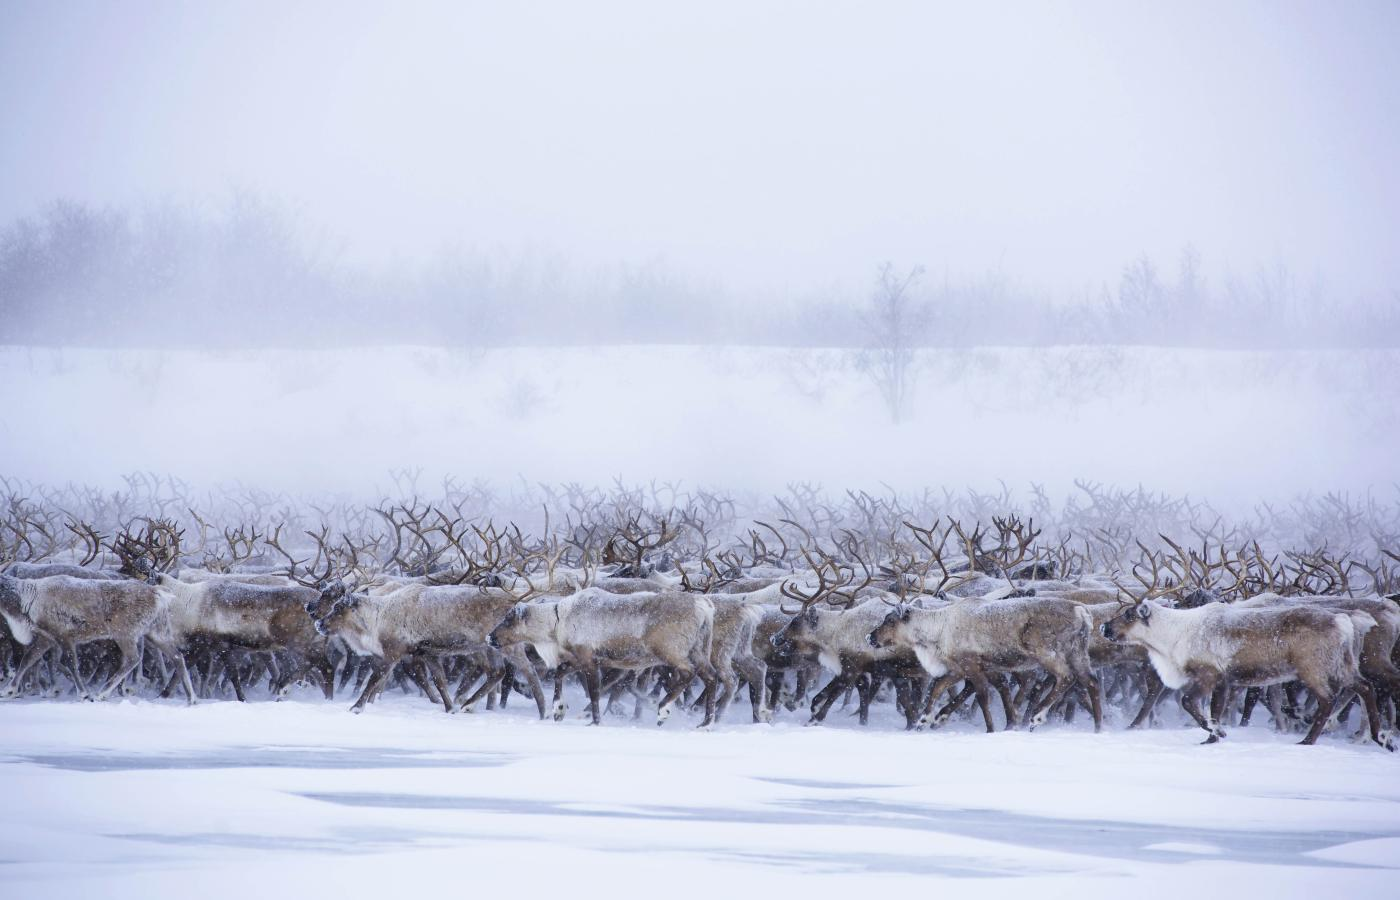 A reindeer herd moves through a snowy landscape in the Arctic